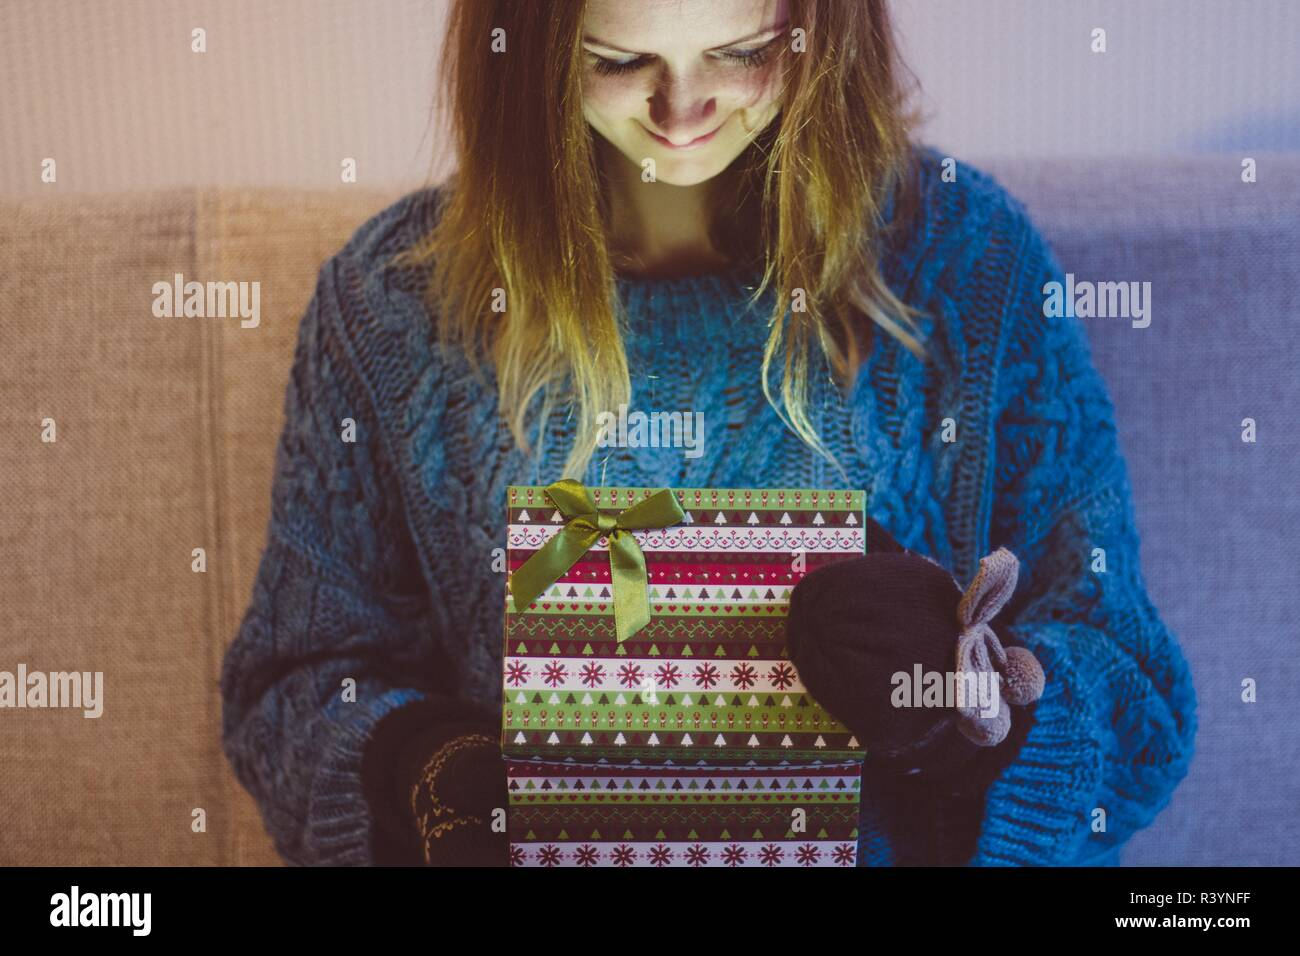 Beautiful and young girl opens a box with modern patterns in which a brightly burning gift. Light falls on her happy face. - Stock Image